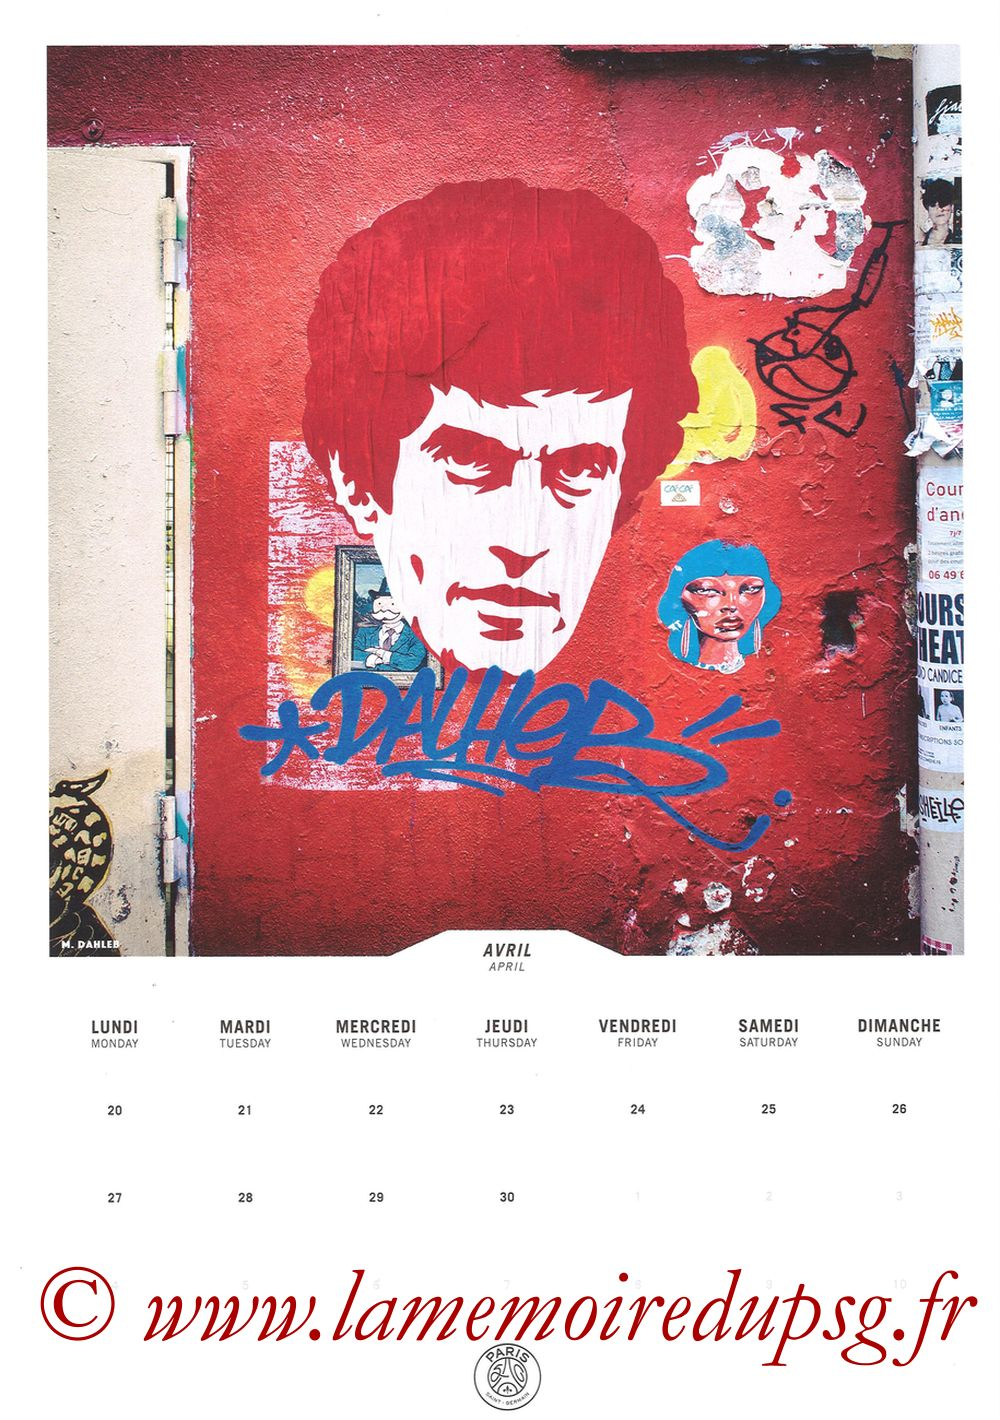 Calendrier PSG 2020 - Page 08 - DAHLEB